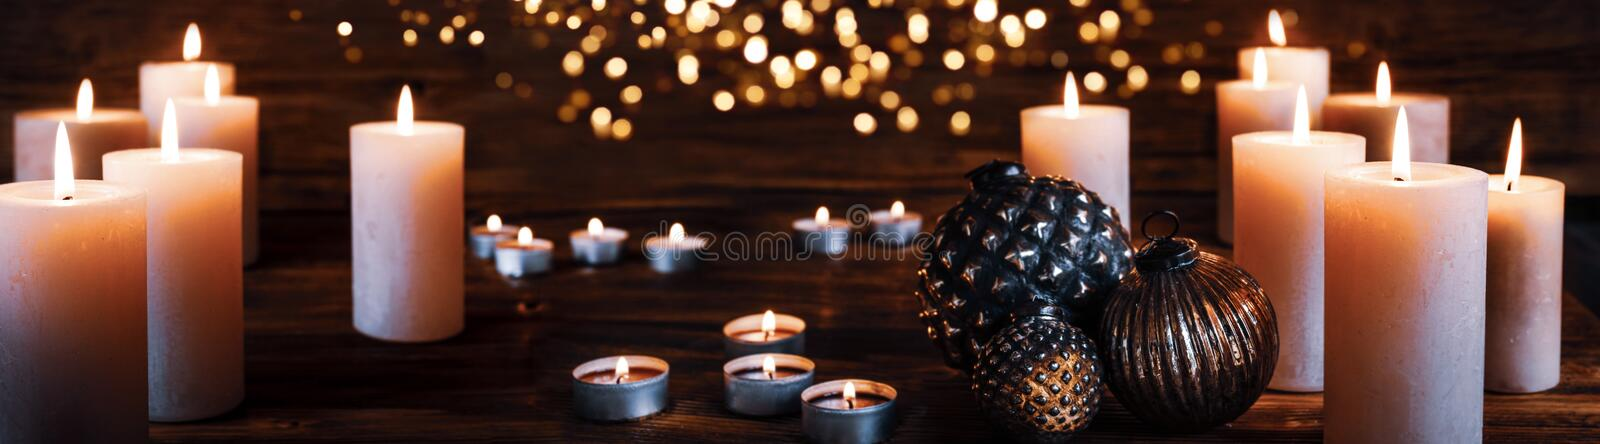 Christmas candles decoration royalty free stock photo